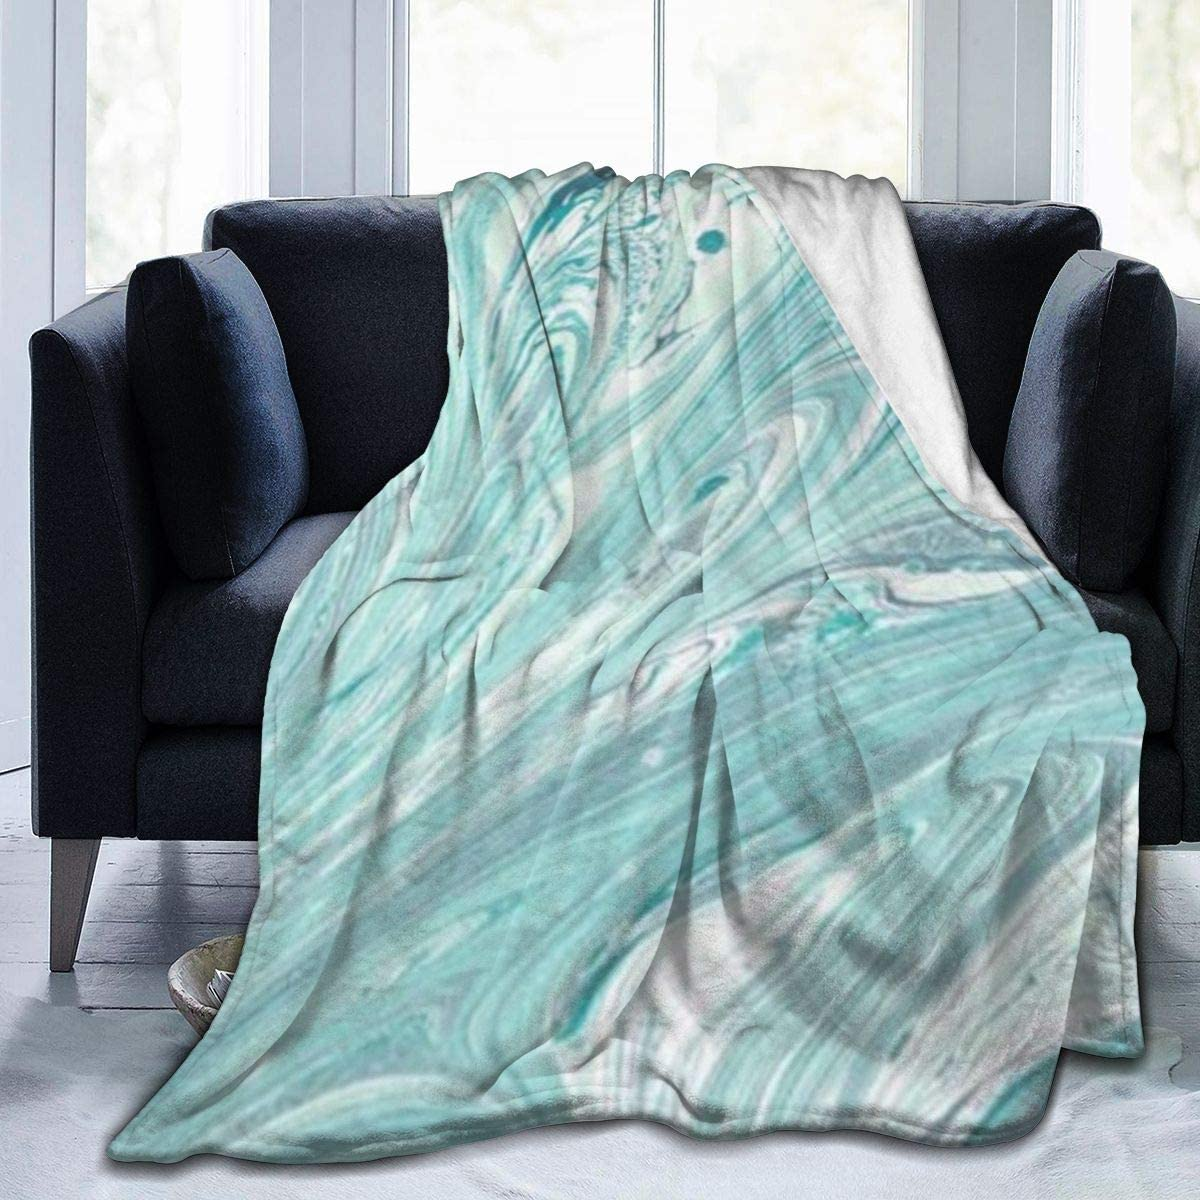 "Soft Cozy Mint Green Marble Throw Blanket, Sherpa Flannel Fleece Sleeping Blanket Throw Wearable Cuddle, Large Blanket for Bedroom Living Rooms Sofa Couch, 60""x80"""